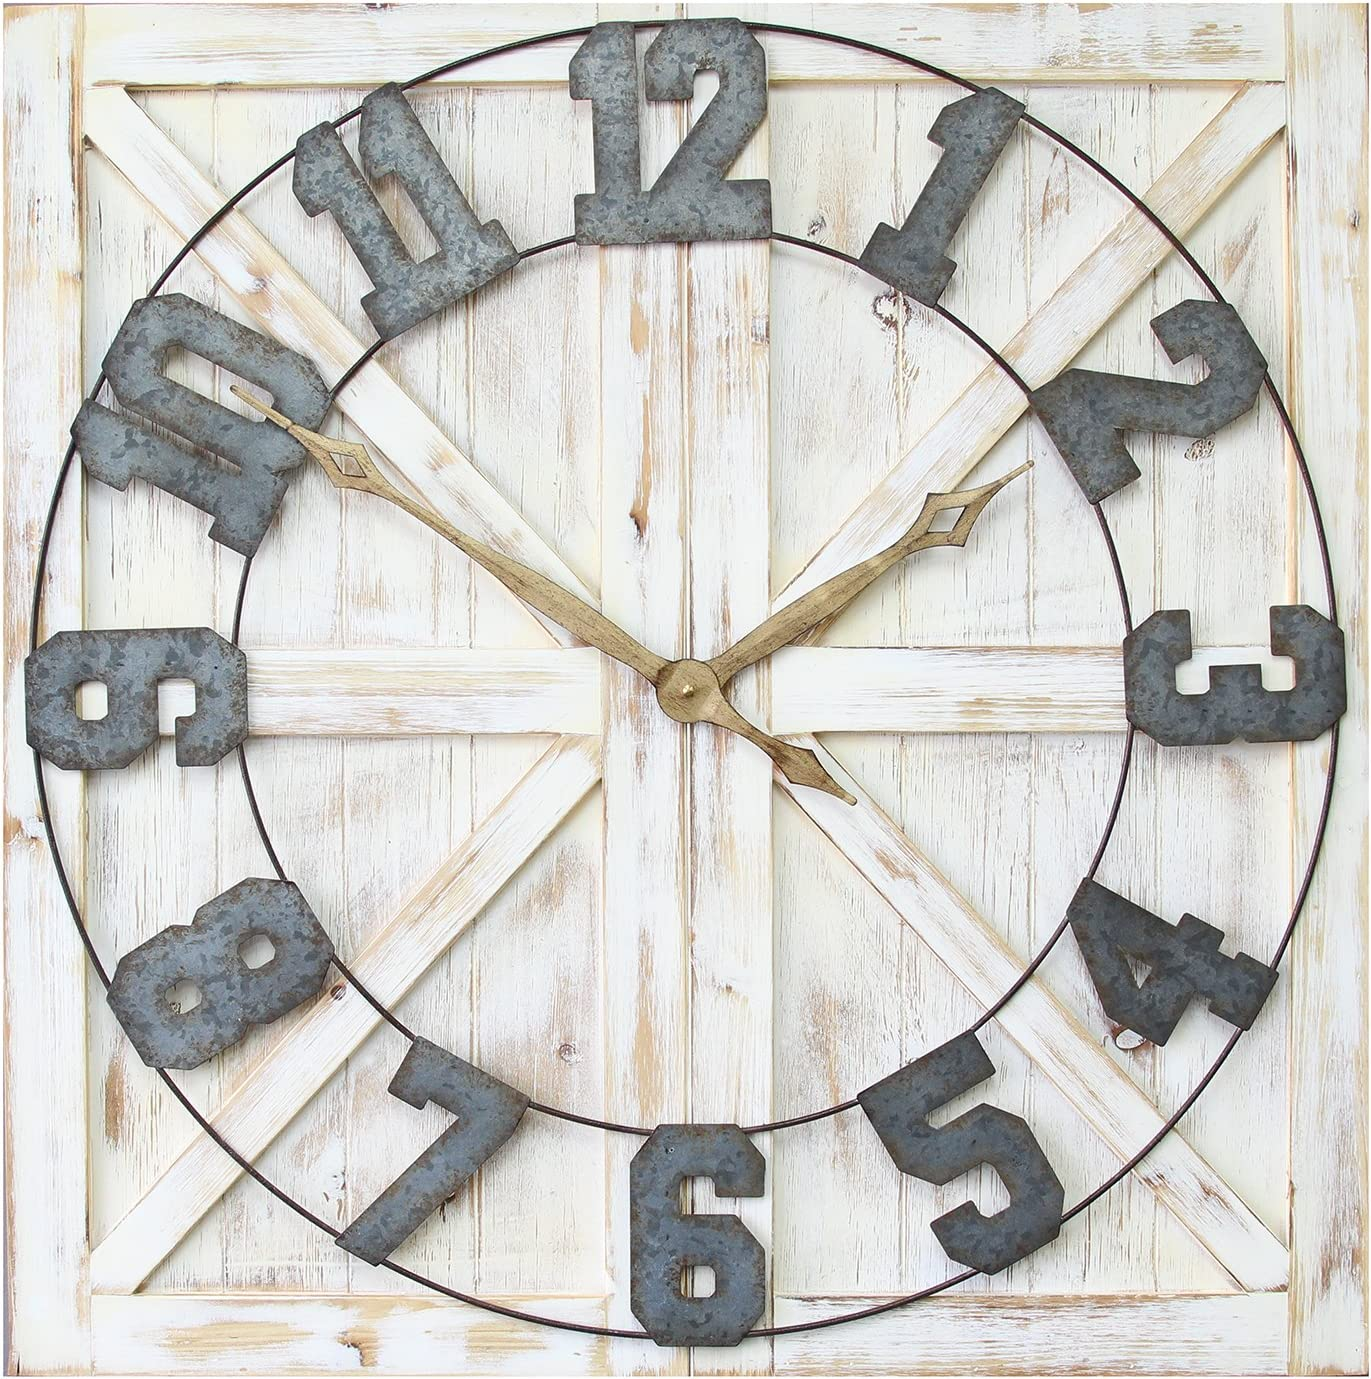 Stratton Home Décor S11545 Rustic Farmhouse Wall Clock 31 50 W X 1 38 D X 31 50 H Distressed White Galvanized Metal Gold Black Home Kitchen